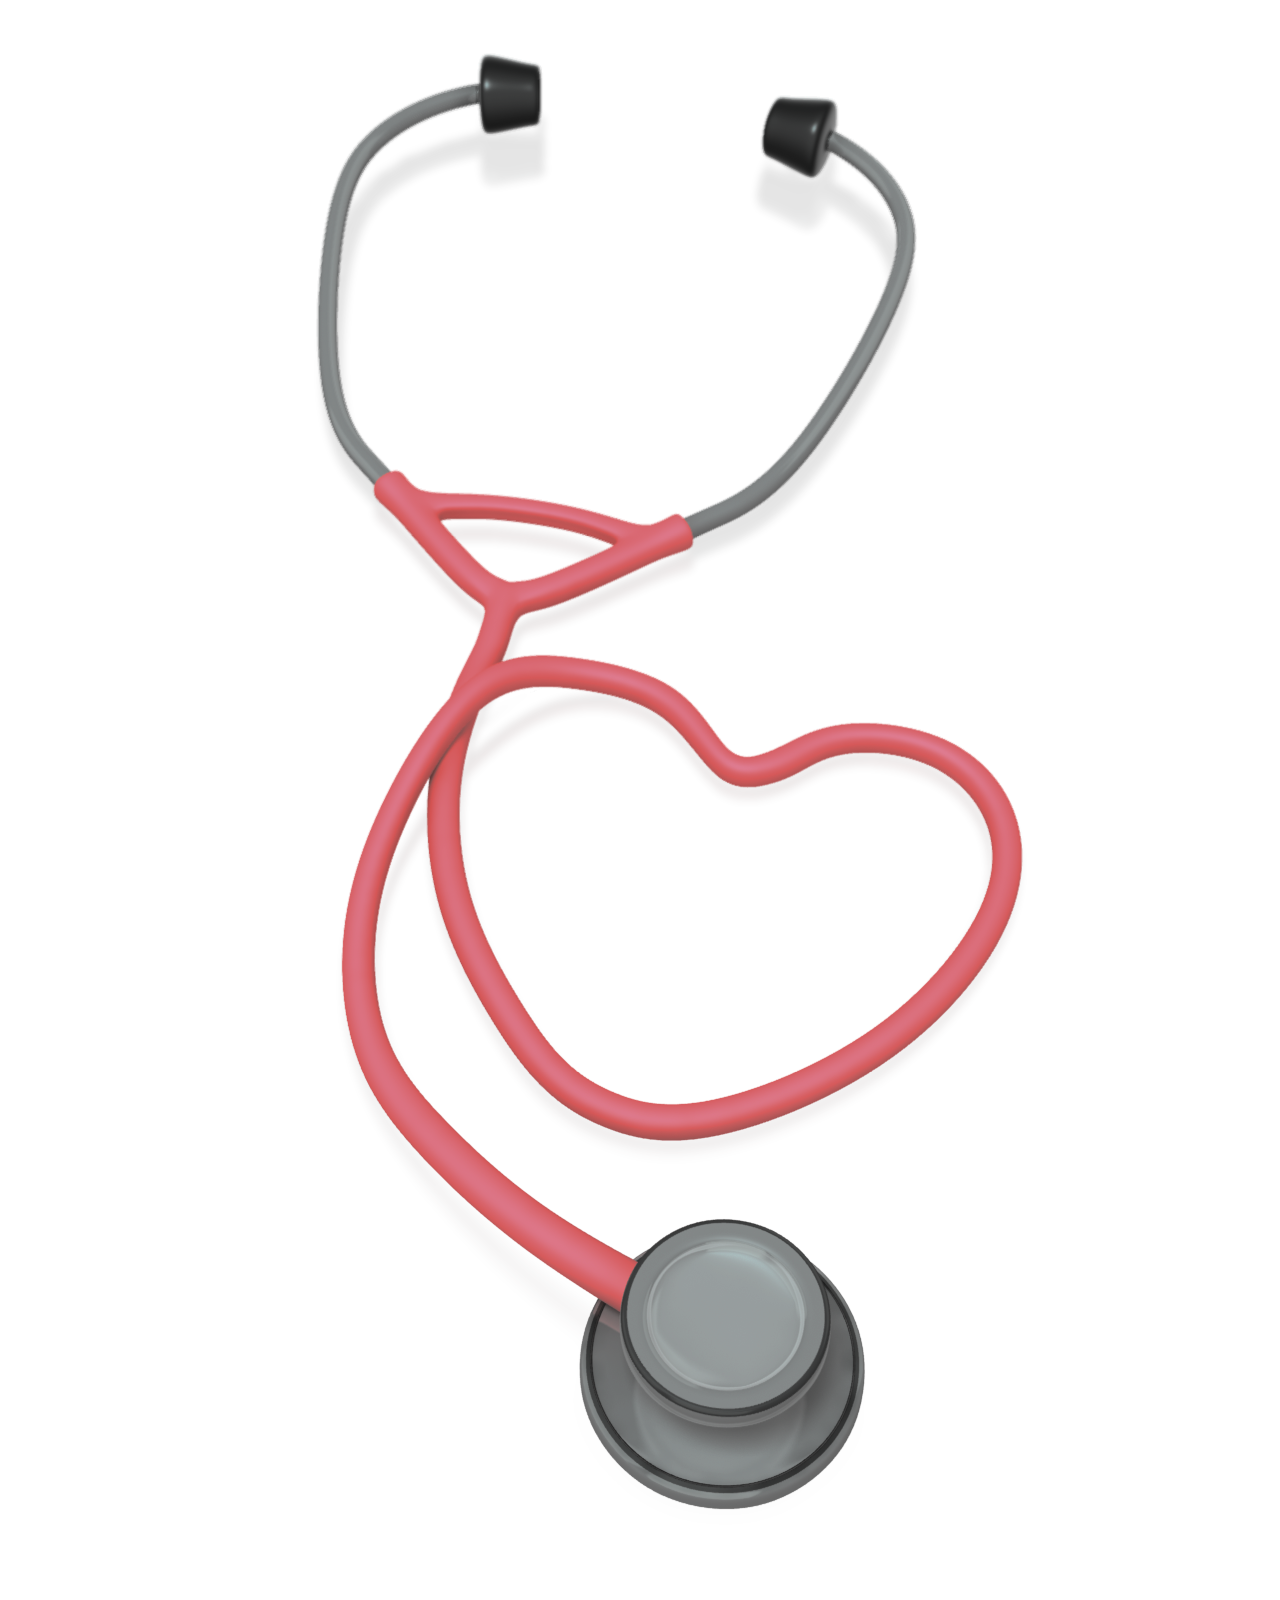 Heart stethoscope clipart vector library library Free Pictures Heart Stethoscope Clipart #27510 - Free Icons and PNG ... vector library library